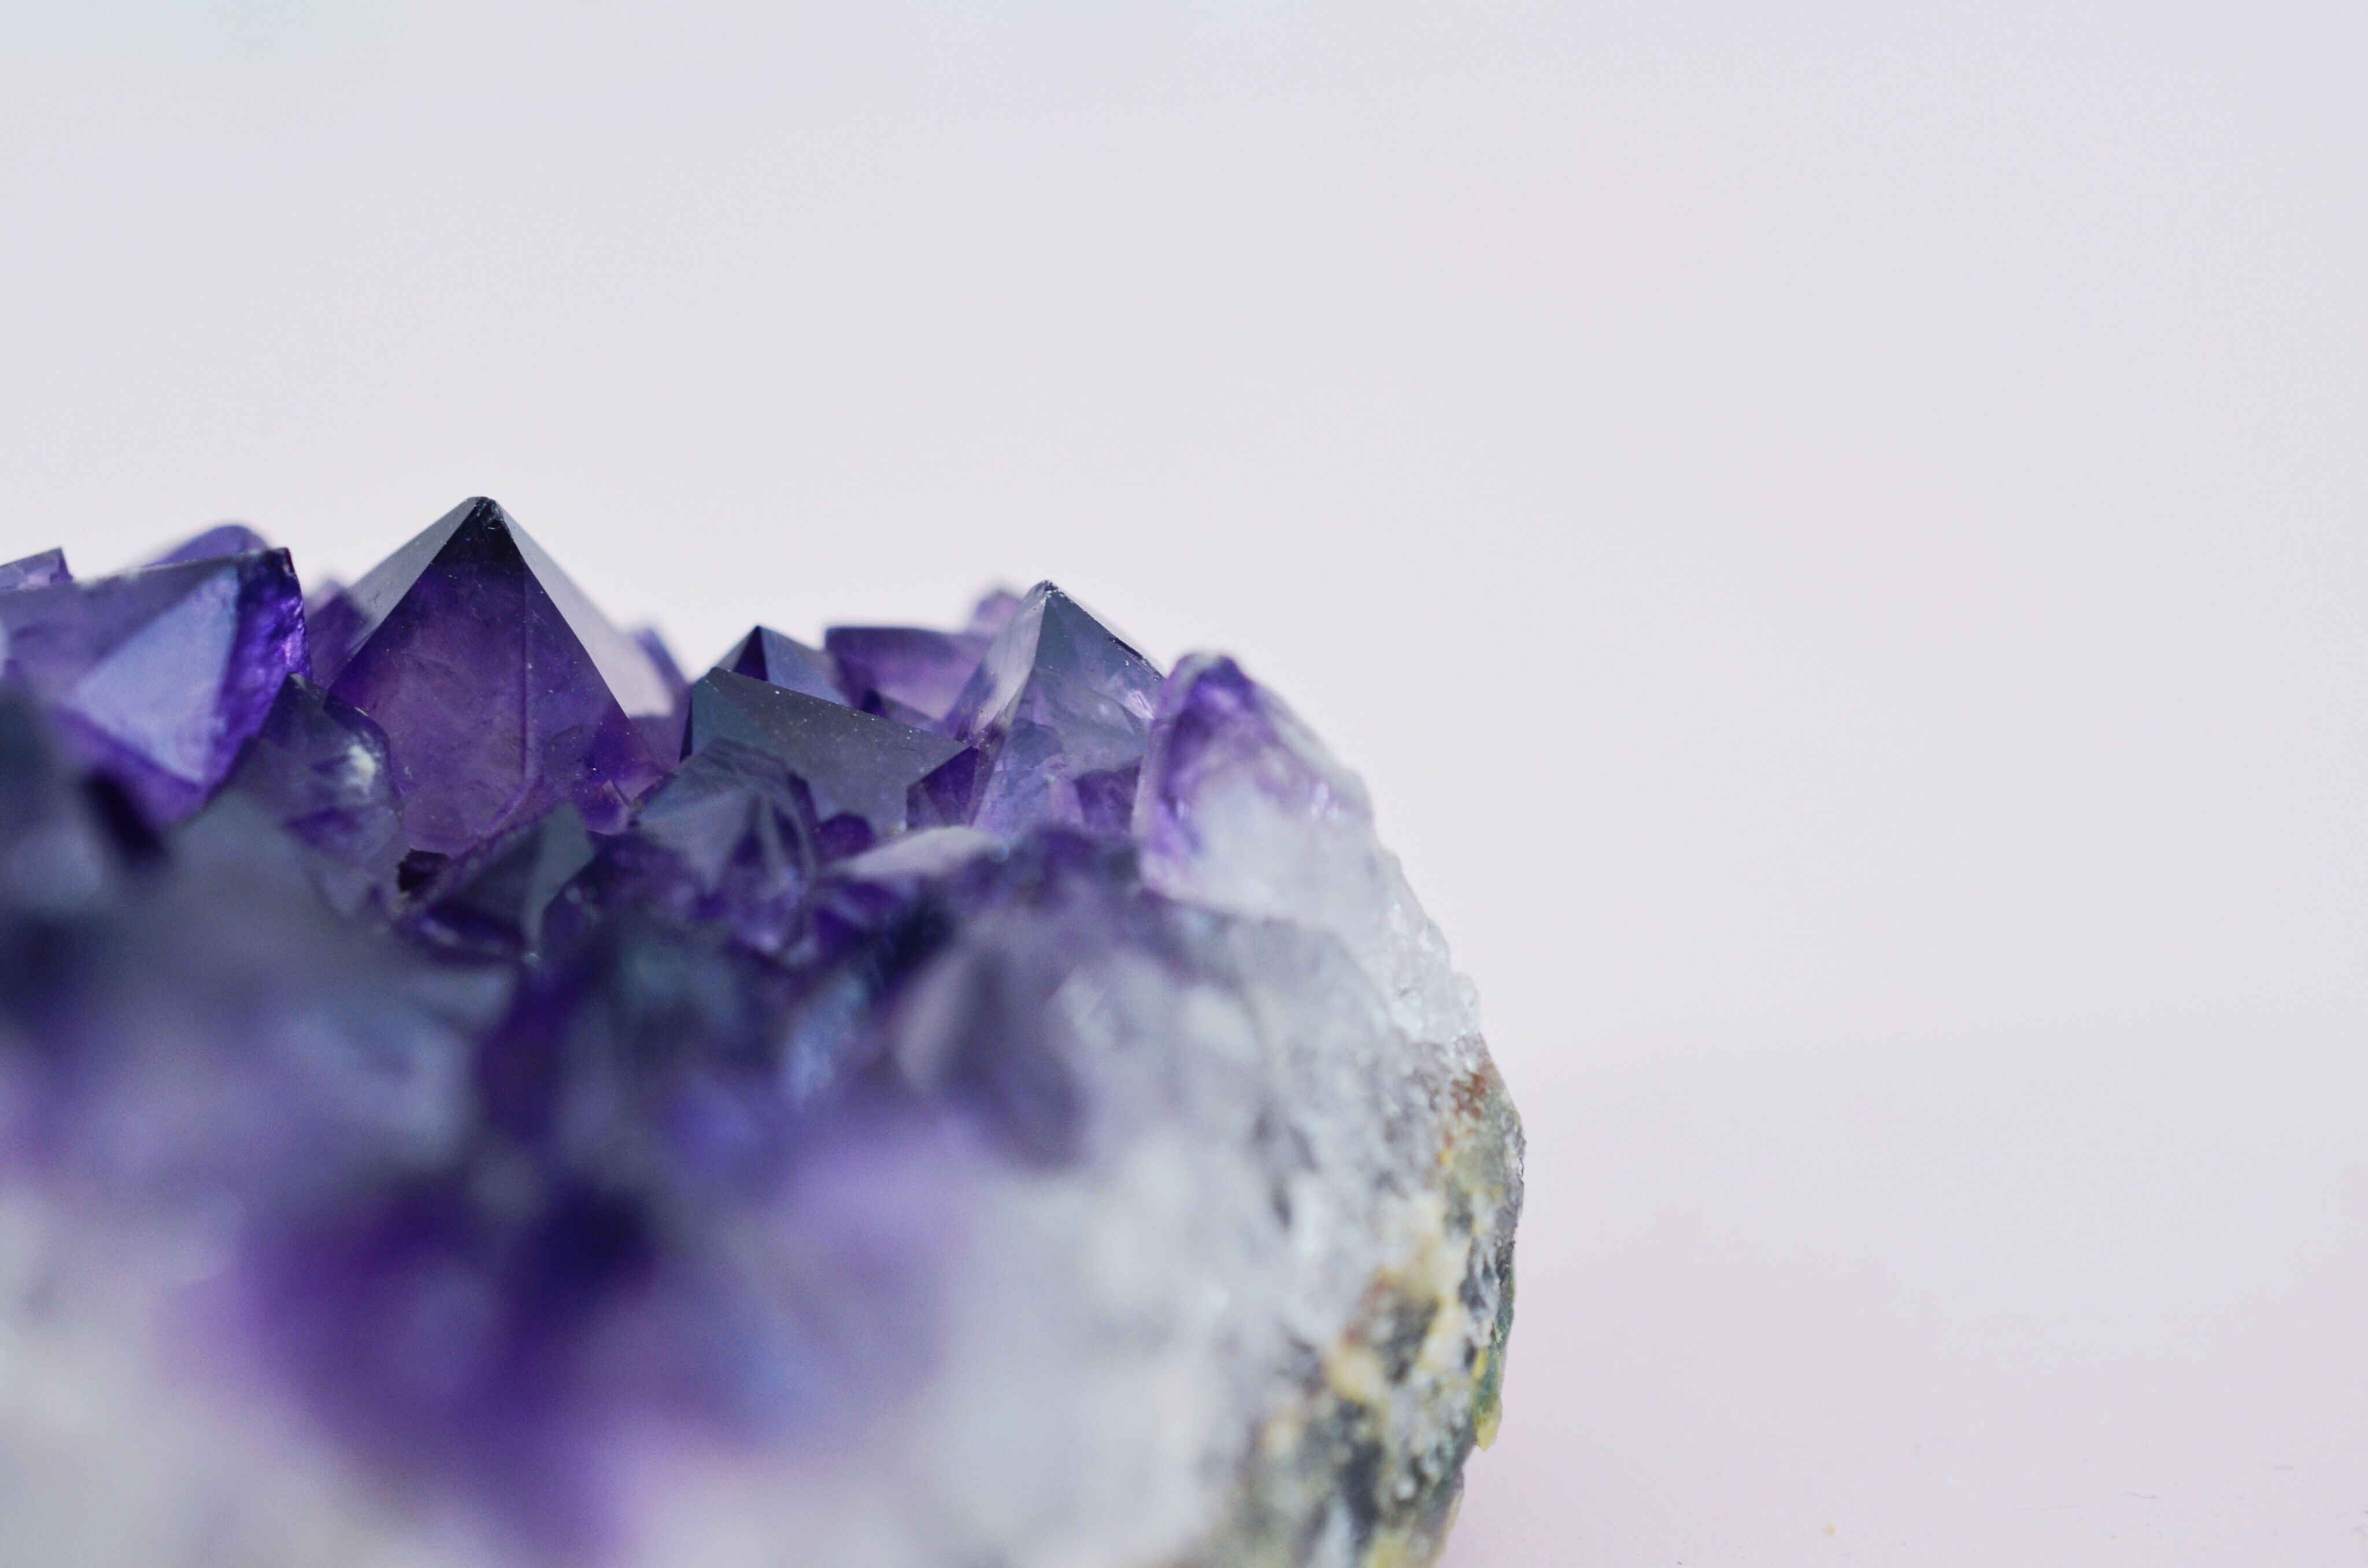 close-up photo of purple geode